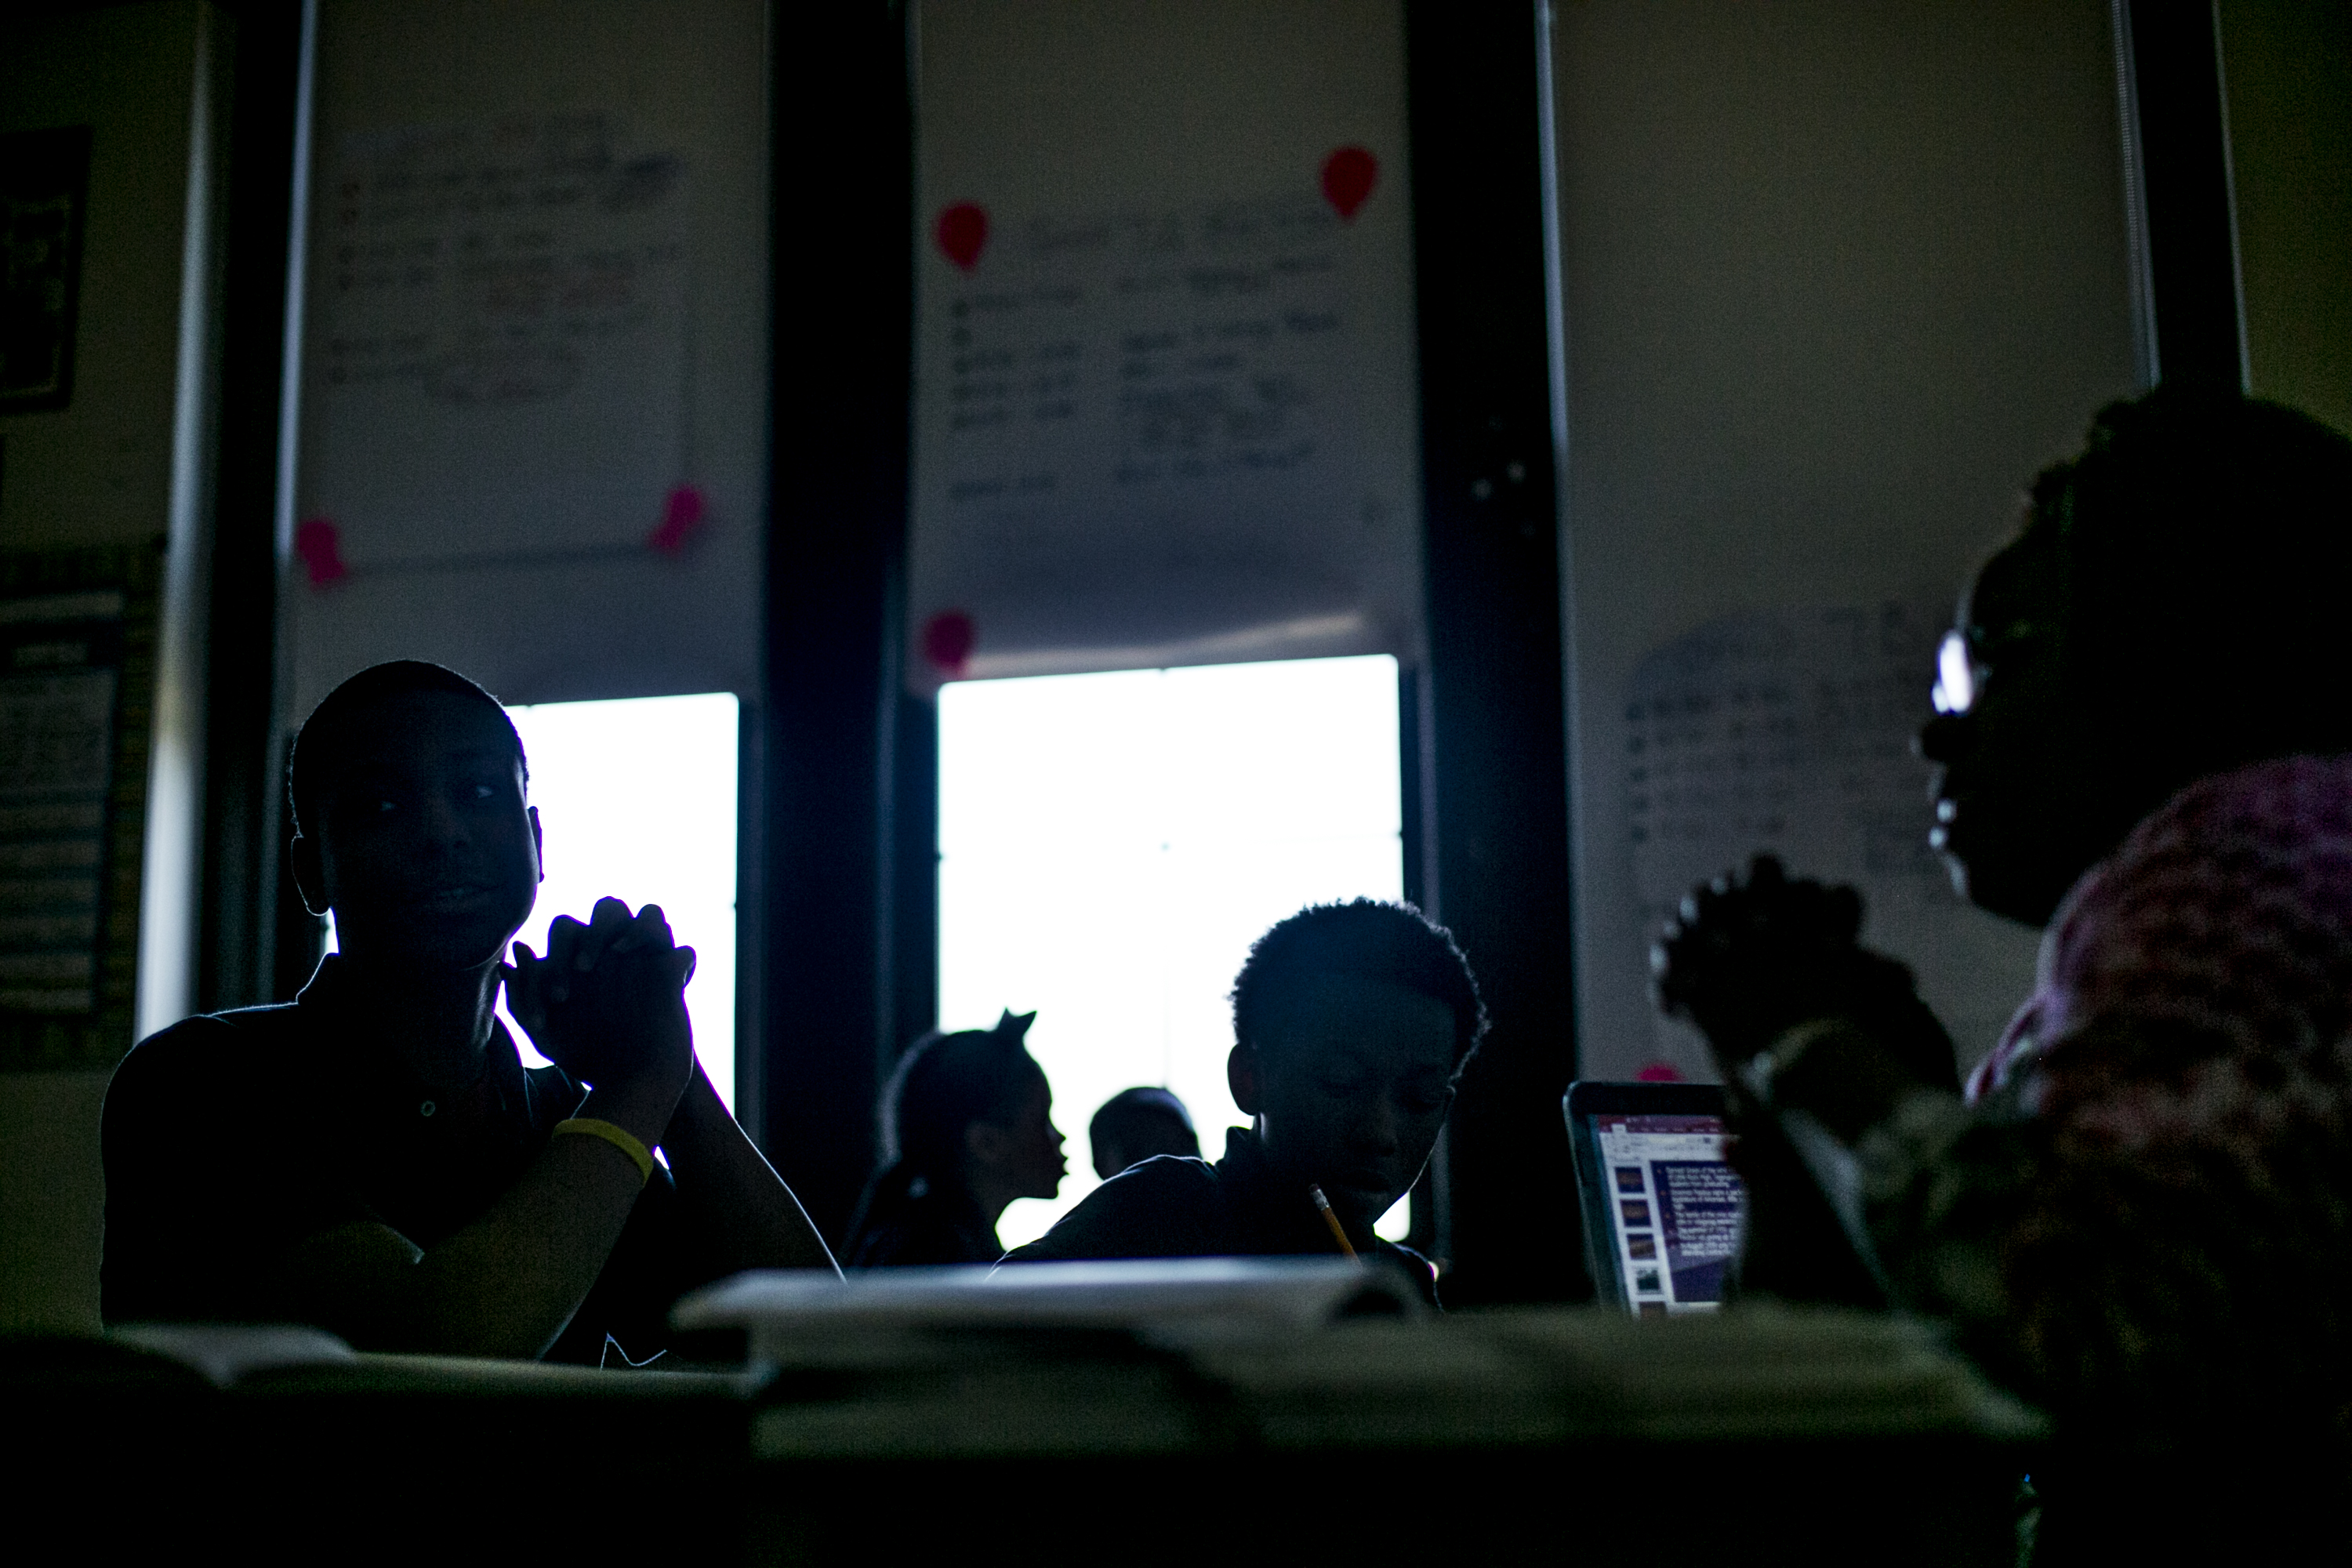 Students and their teacher sit in a dark classroom, the students silhouetted against the windows.